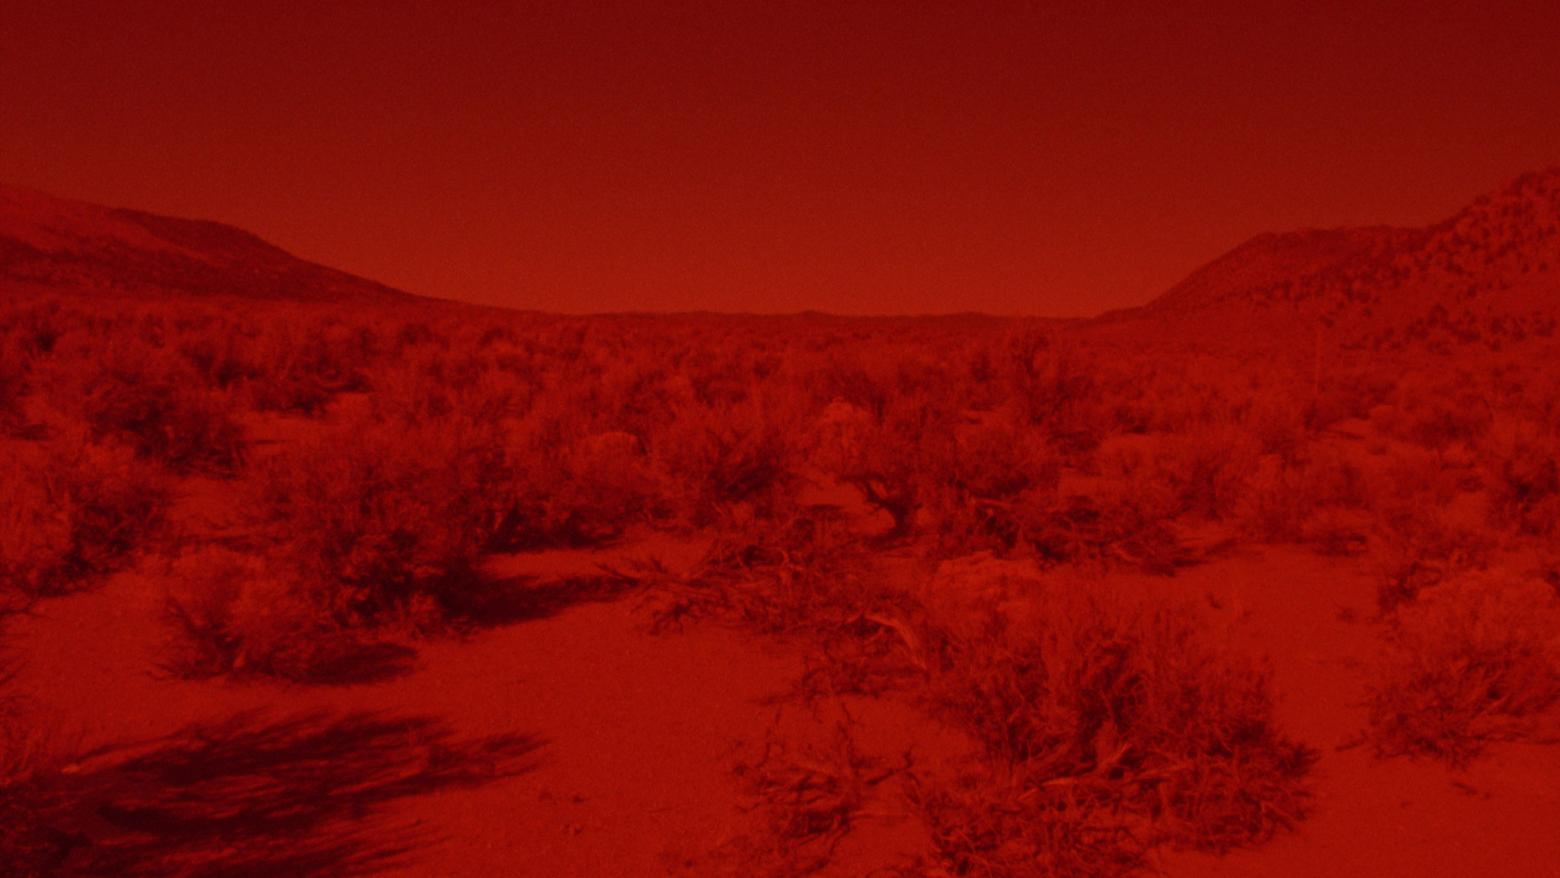 Laida Lertxundi, Sunset Red, 2016. 16mm transferred to HD, color, sound. 4 min. Courtesy of the artist.